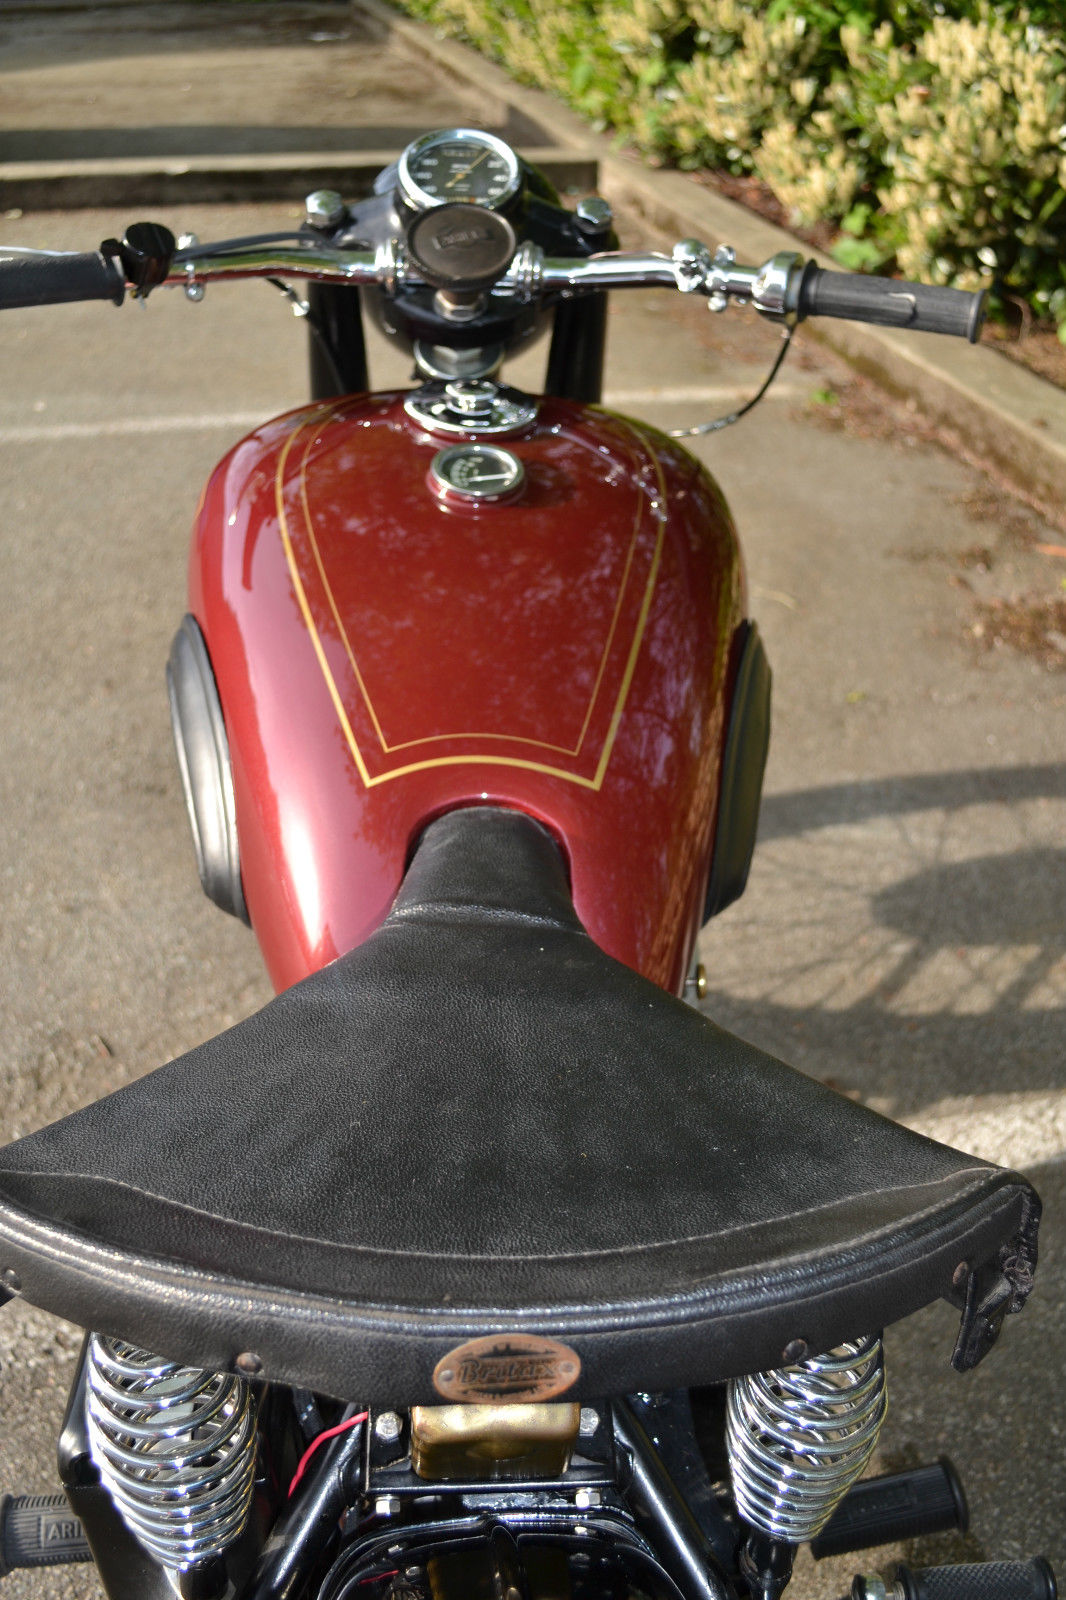 Ariel Square Four - 1952 - Seat, Gas Tank and Petrol Cap.